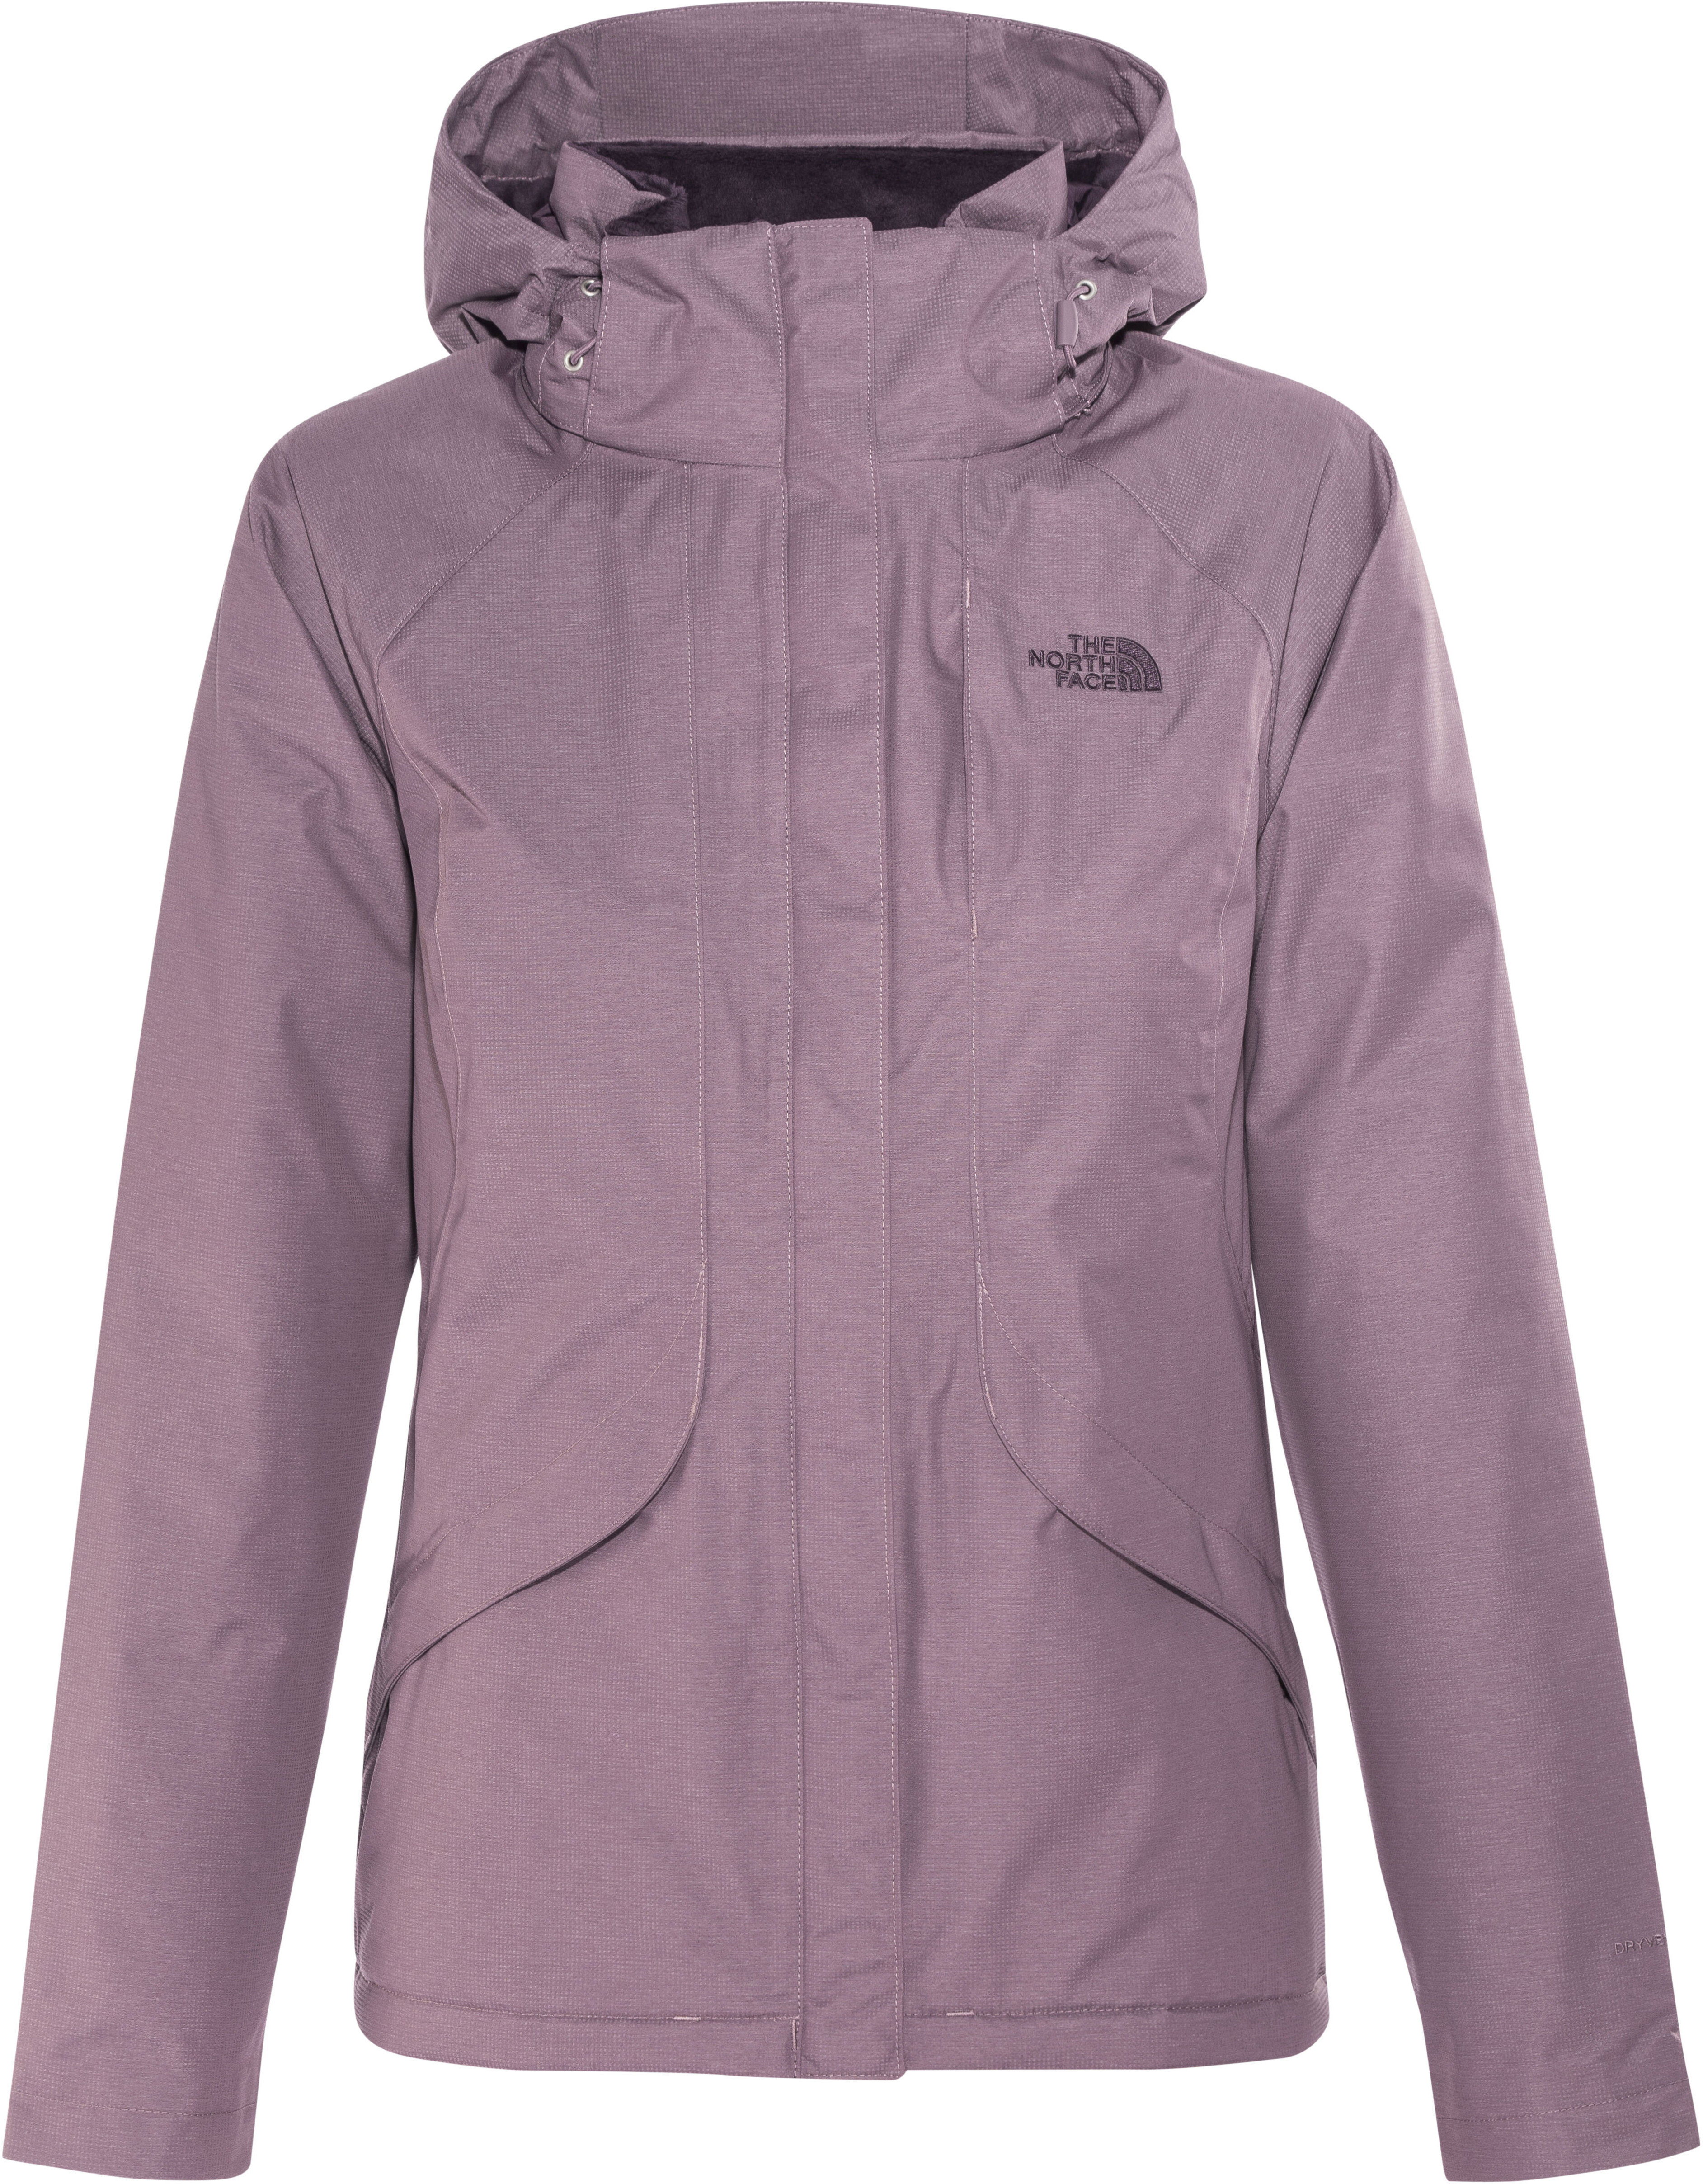 313c57fa1f35 The North Face Inlux Insulated Jacket Women purple at Addnature.co.uk